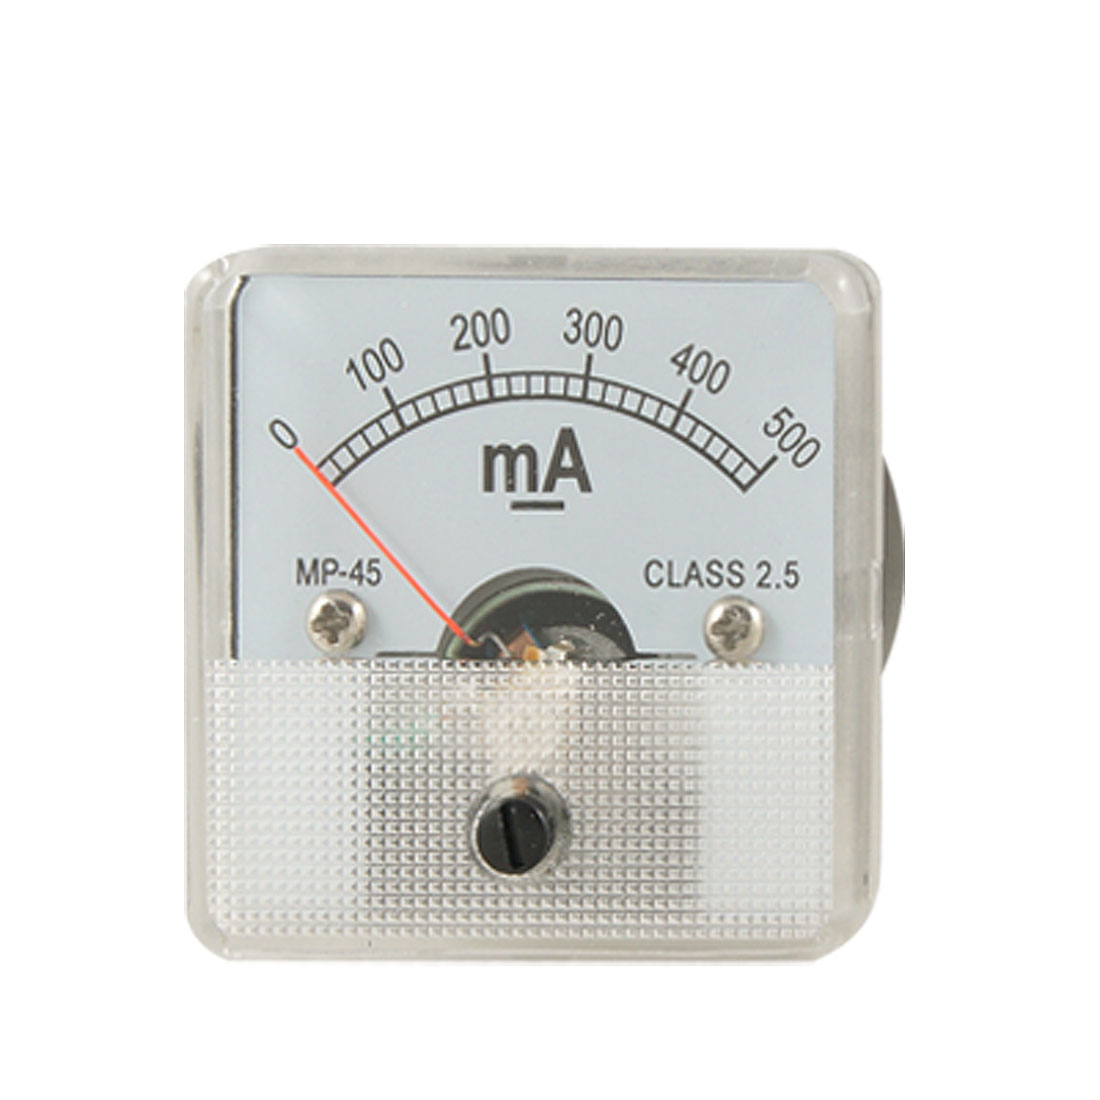 Analog Current Panel Meter DC 500 Milliampere Ammeter